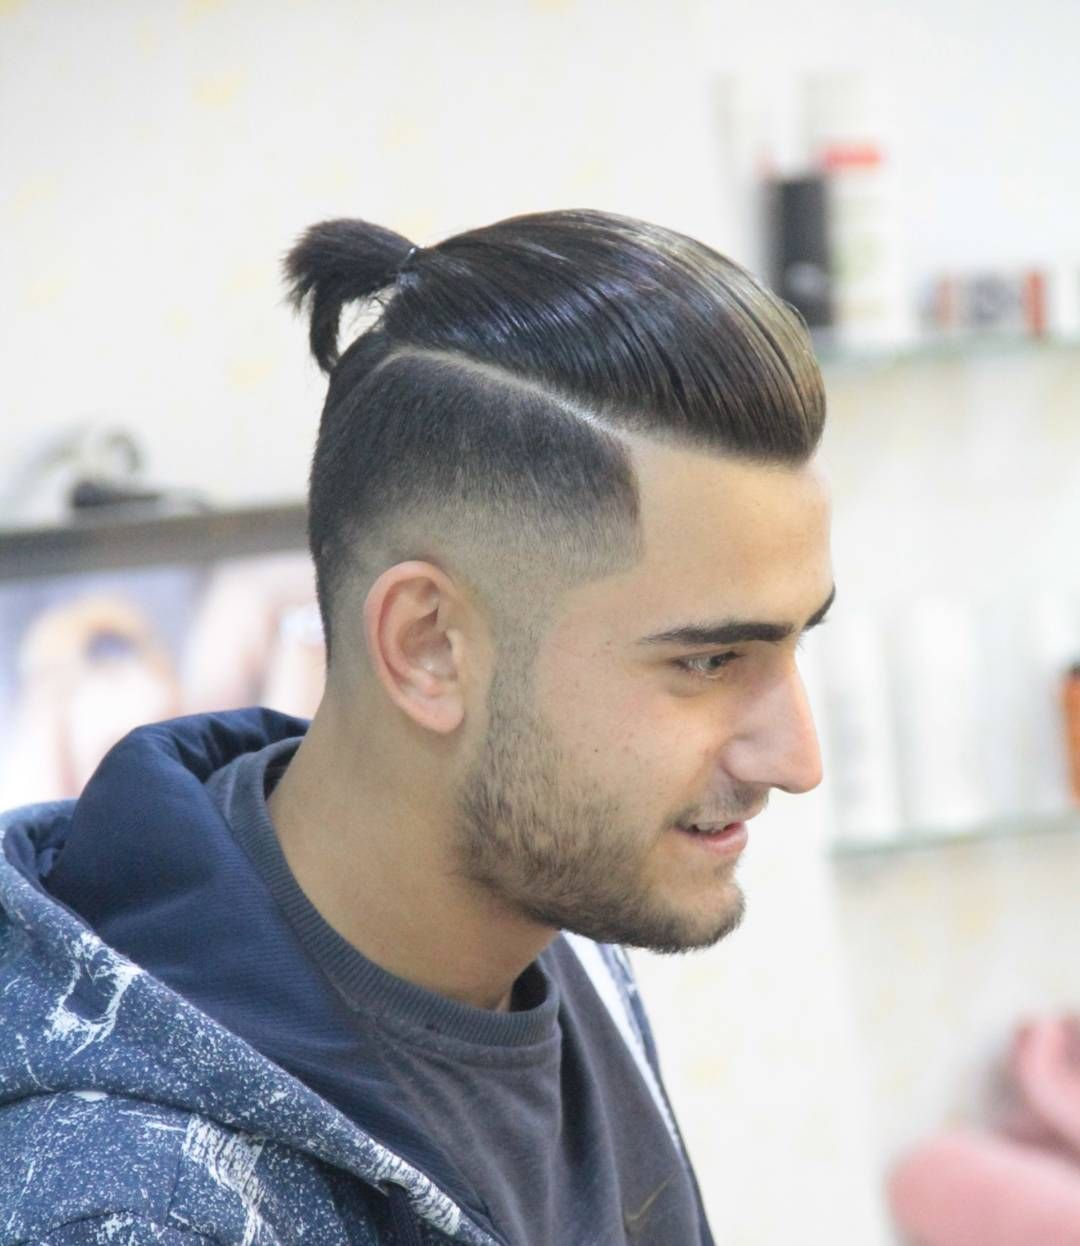 New Man Bun Hairstyle Trend The Low Undercut Man Bun Hairstyle Long Hair Styles Men Man Bun Beard Man Bun Hairstyles